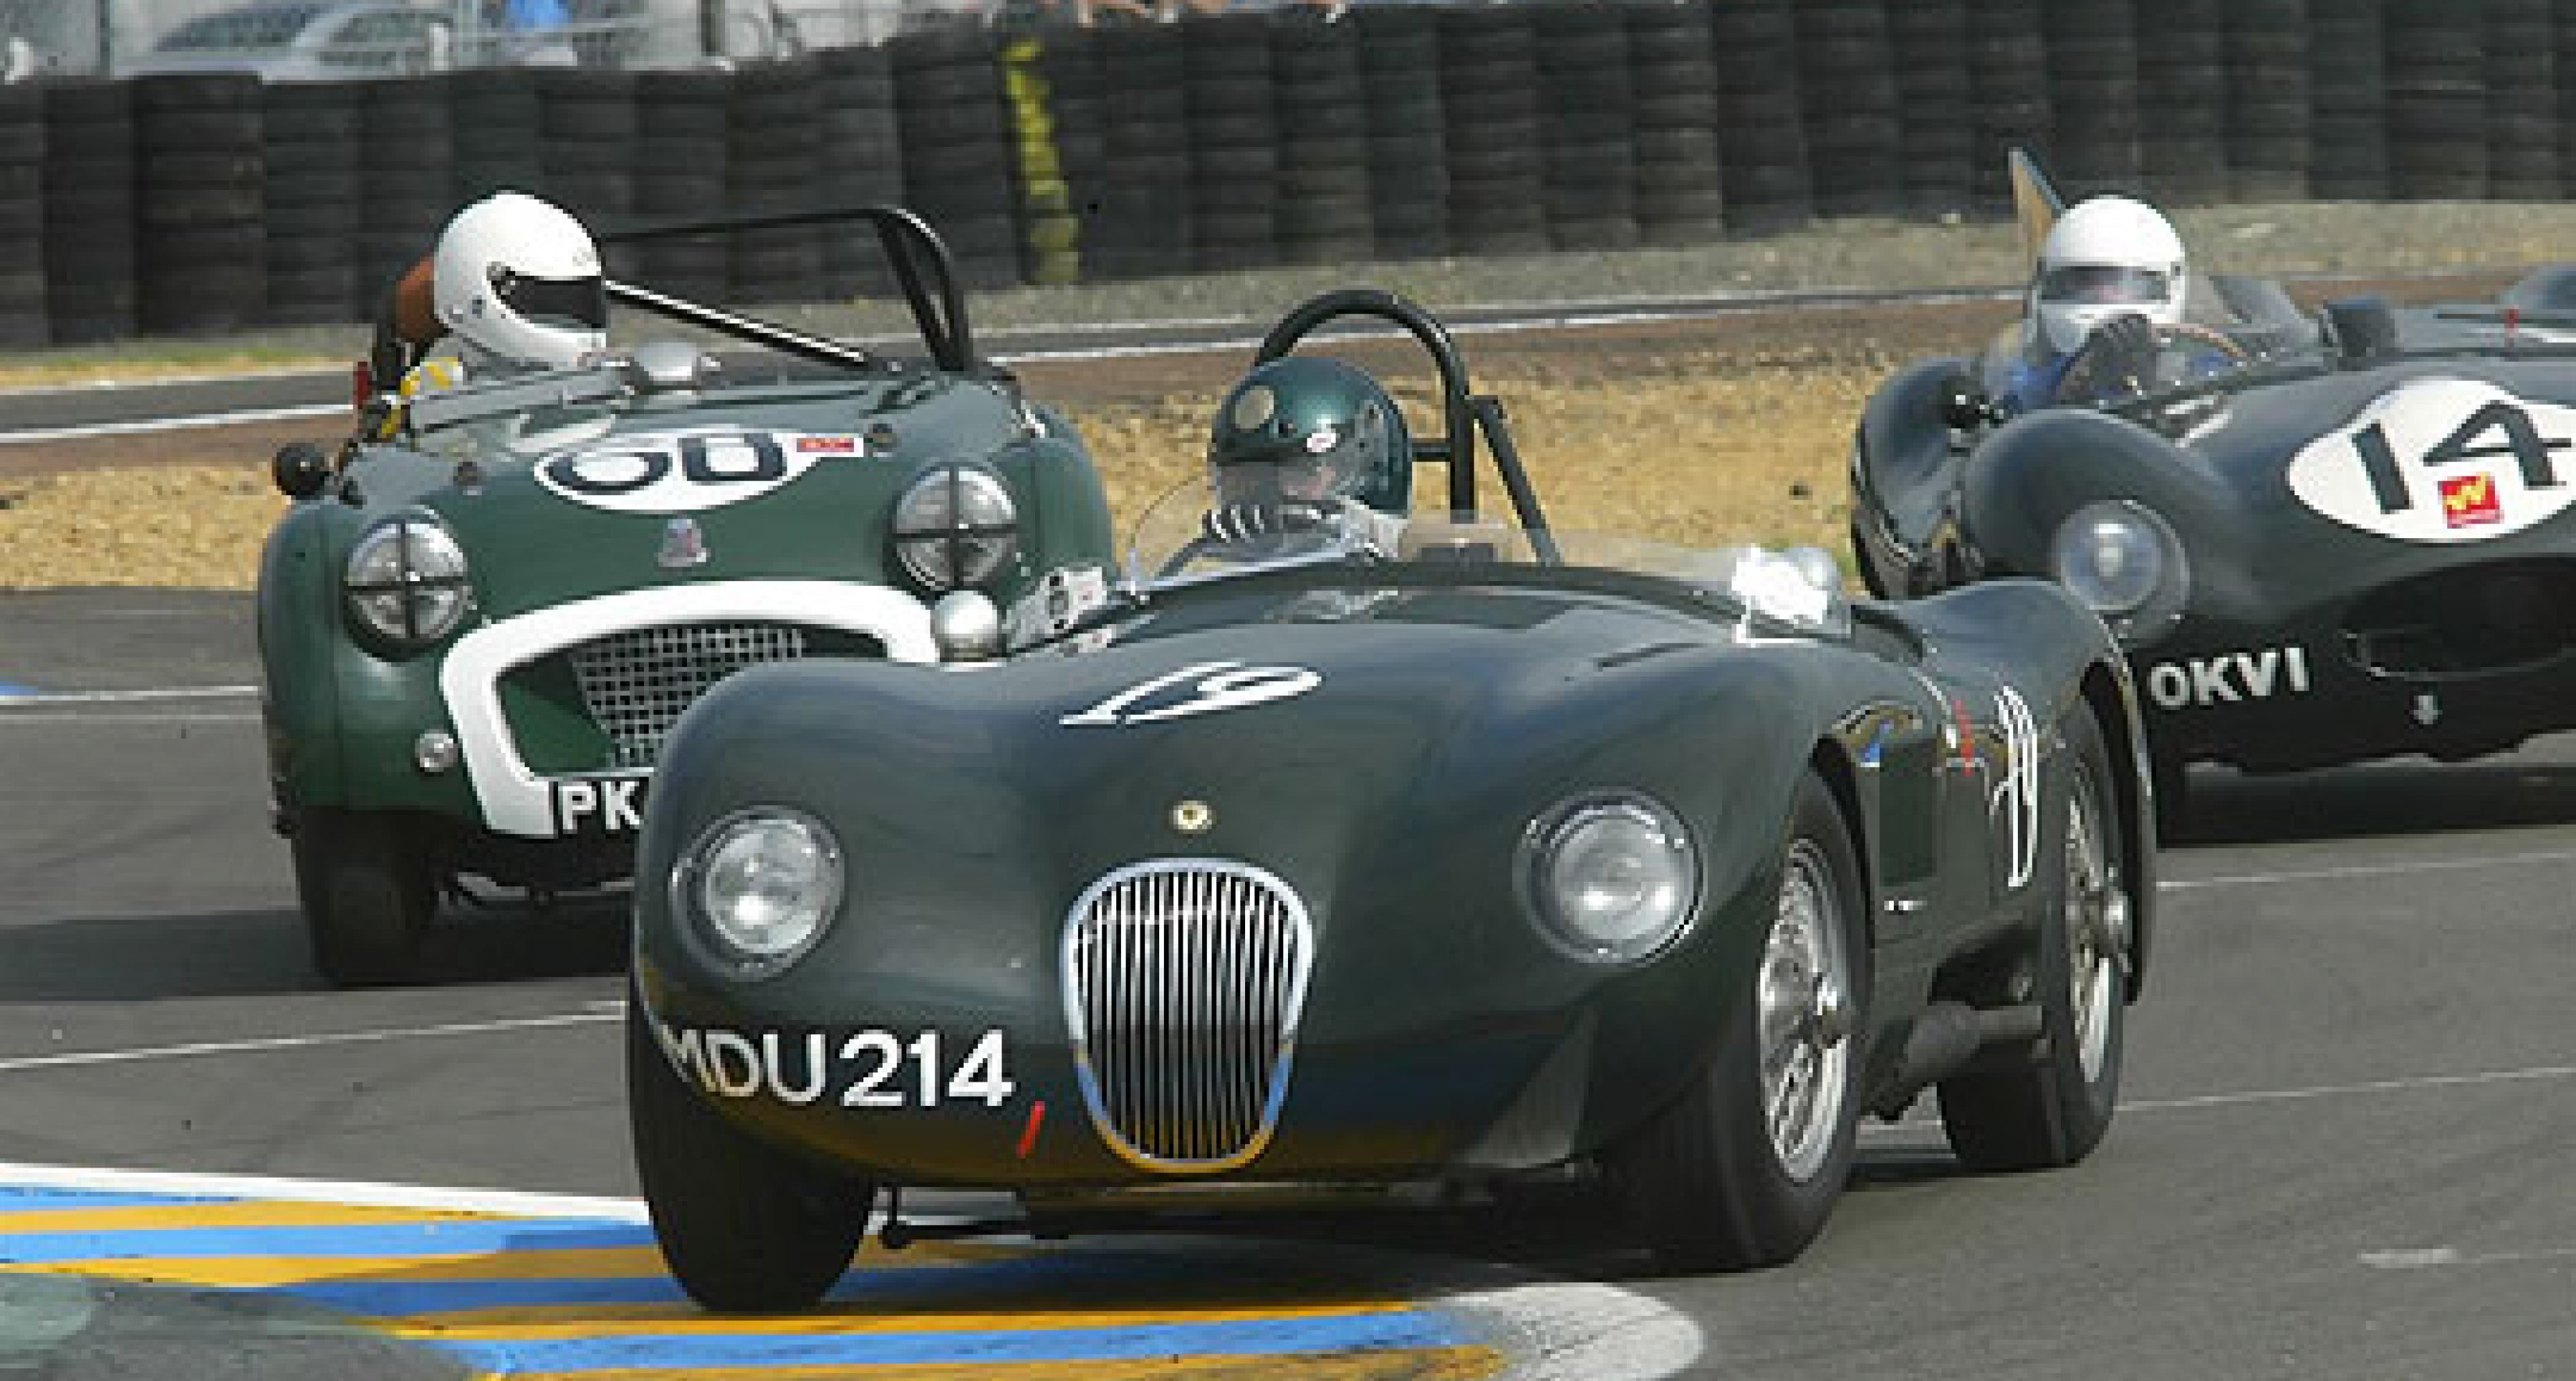 Additional historic race at Le Mans 2006